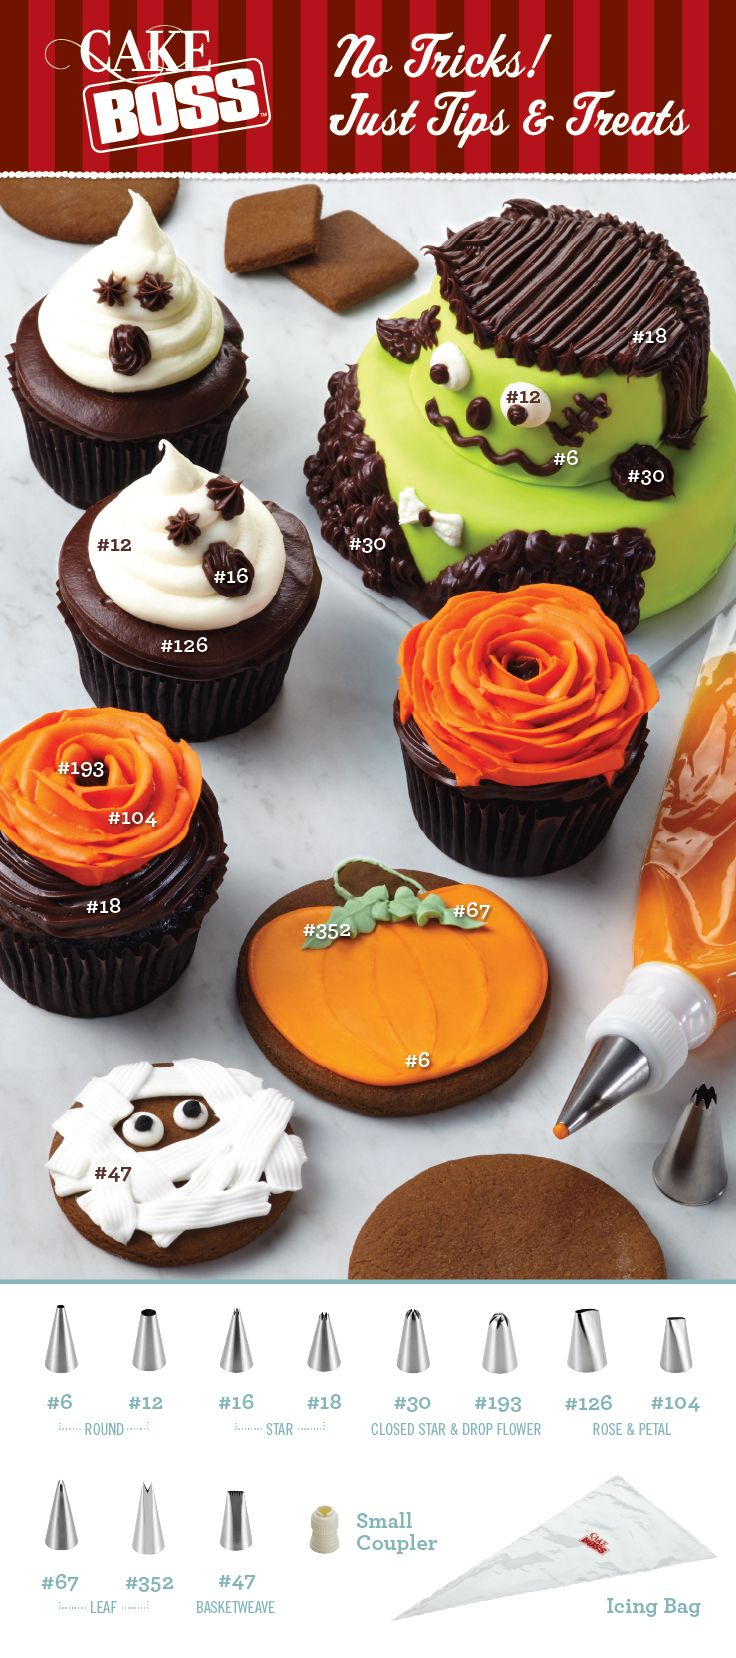 Spooktacular Treats Start With The Cake Boss 12 Piece Decorating Tip Set Click On The Image To Learn More Cake Decorating Tips Cake Boss Baking Sweets